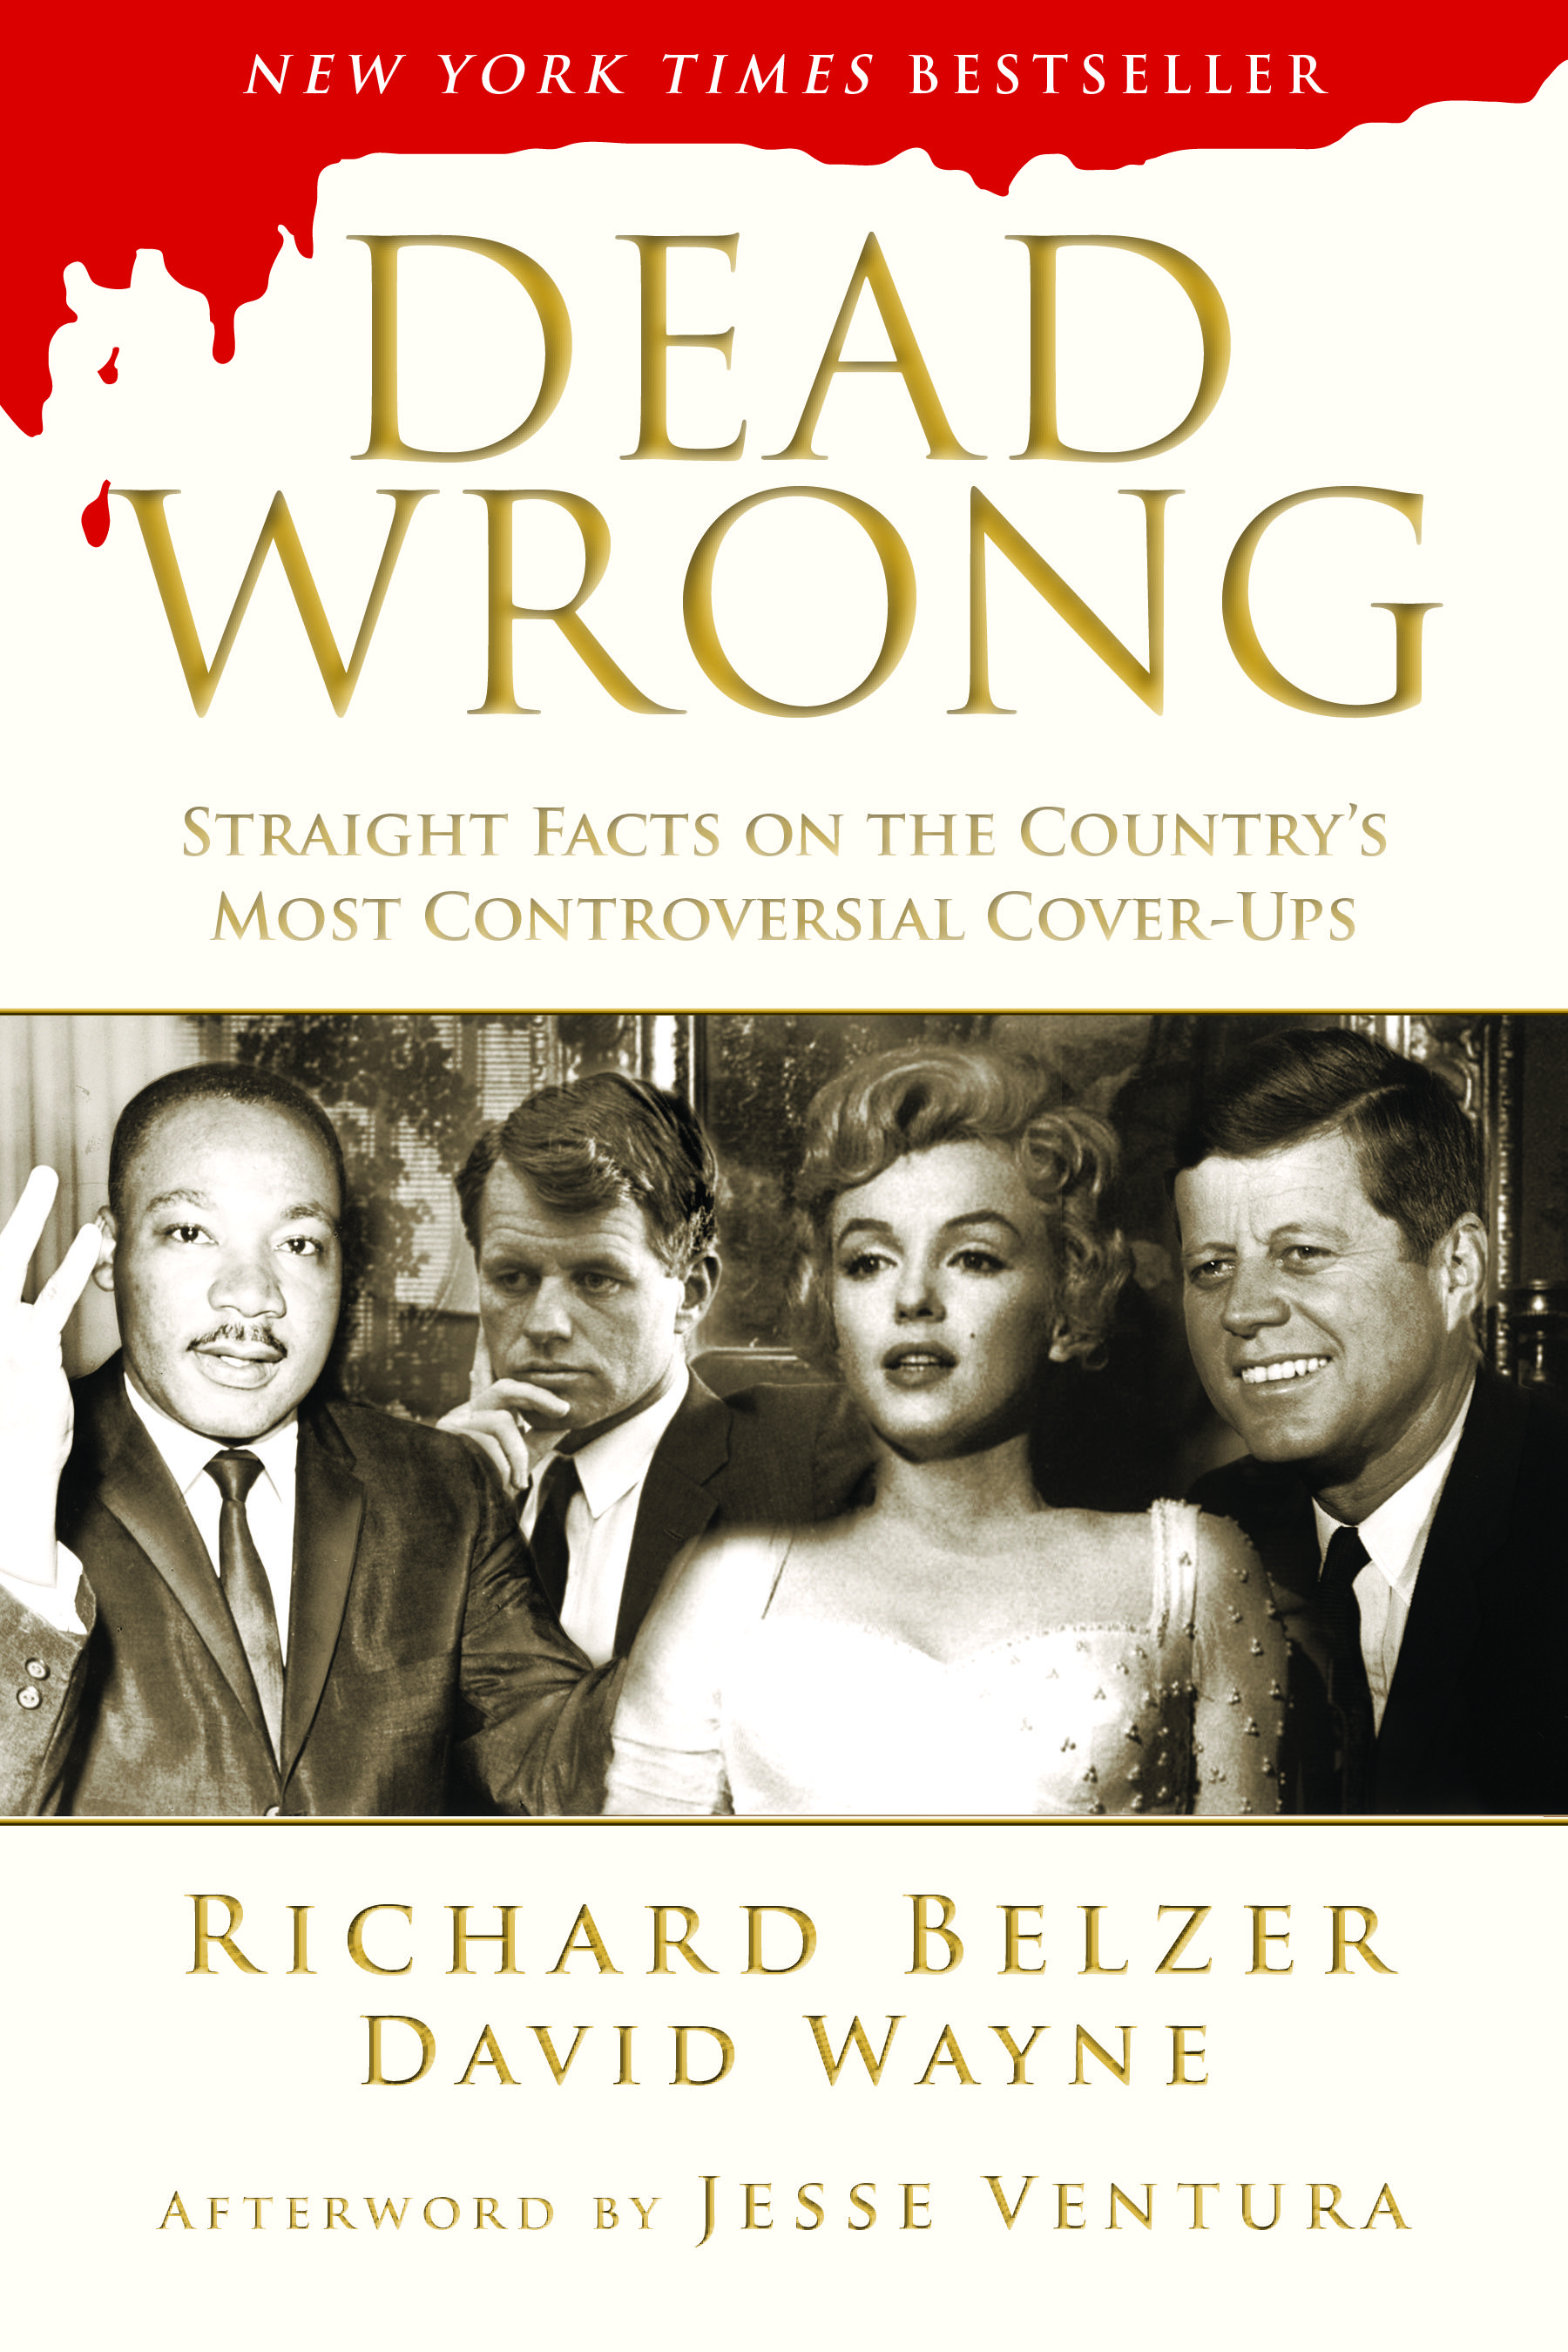 Richard Belzer Dead Wrong cover